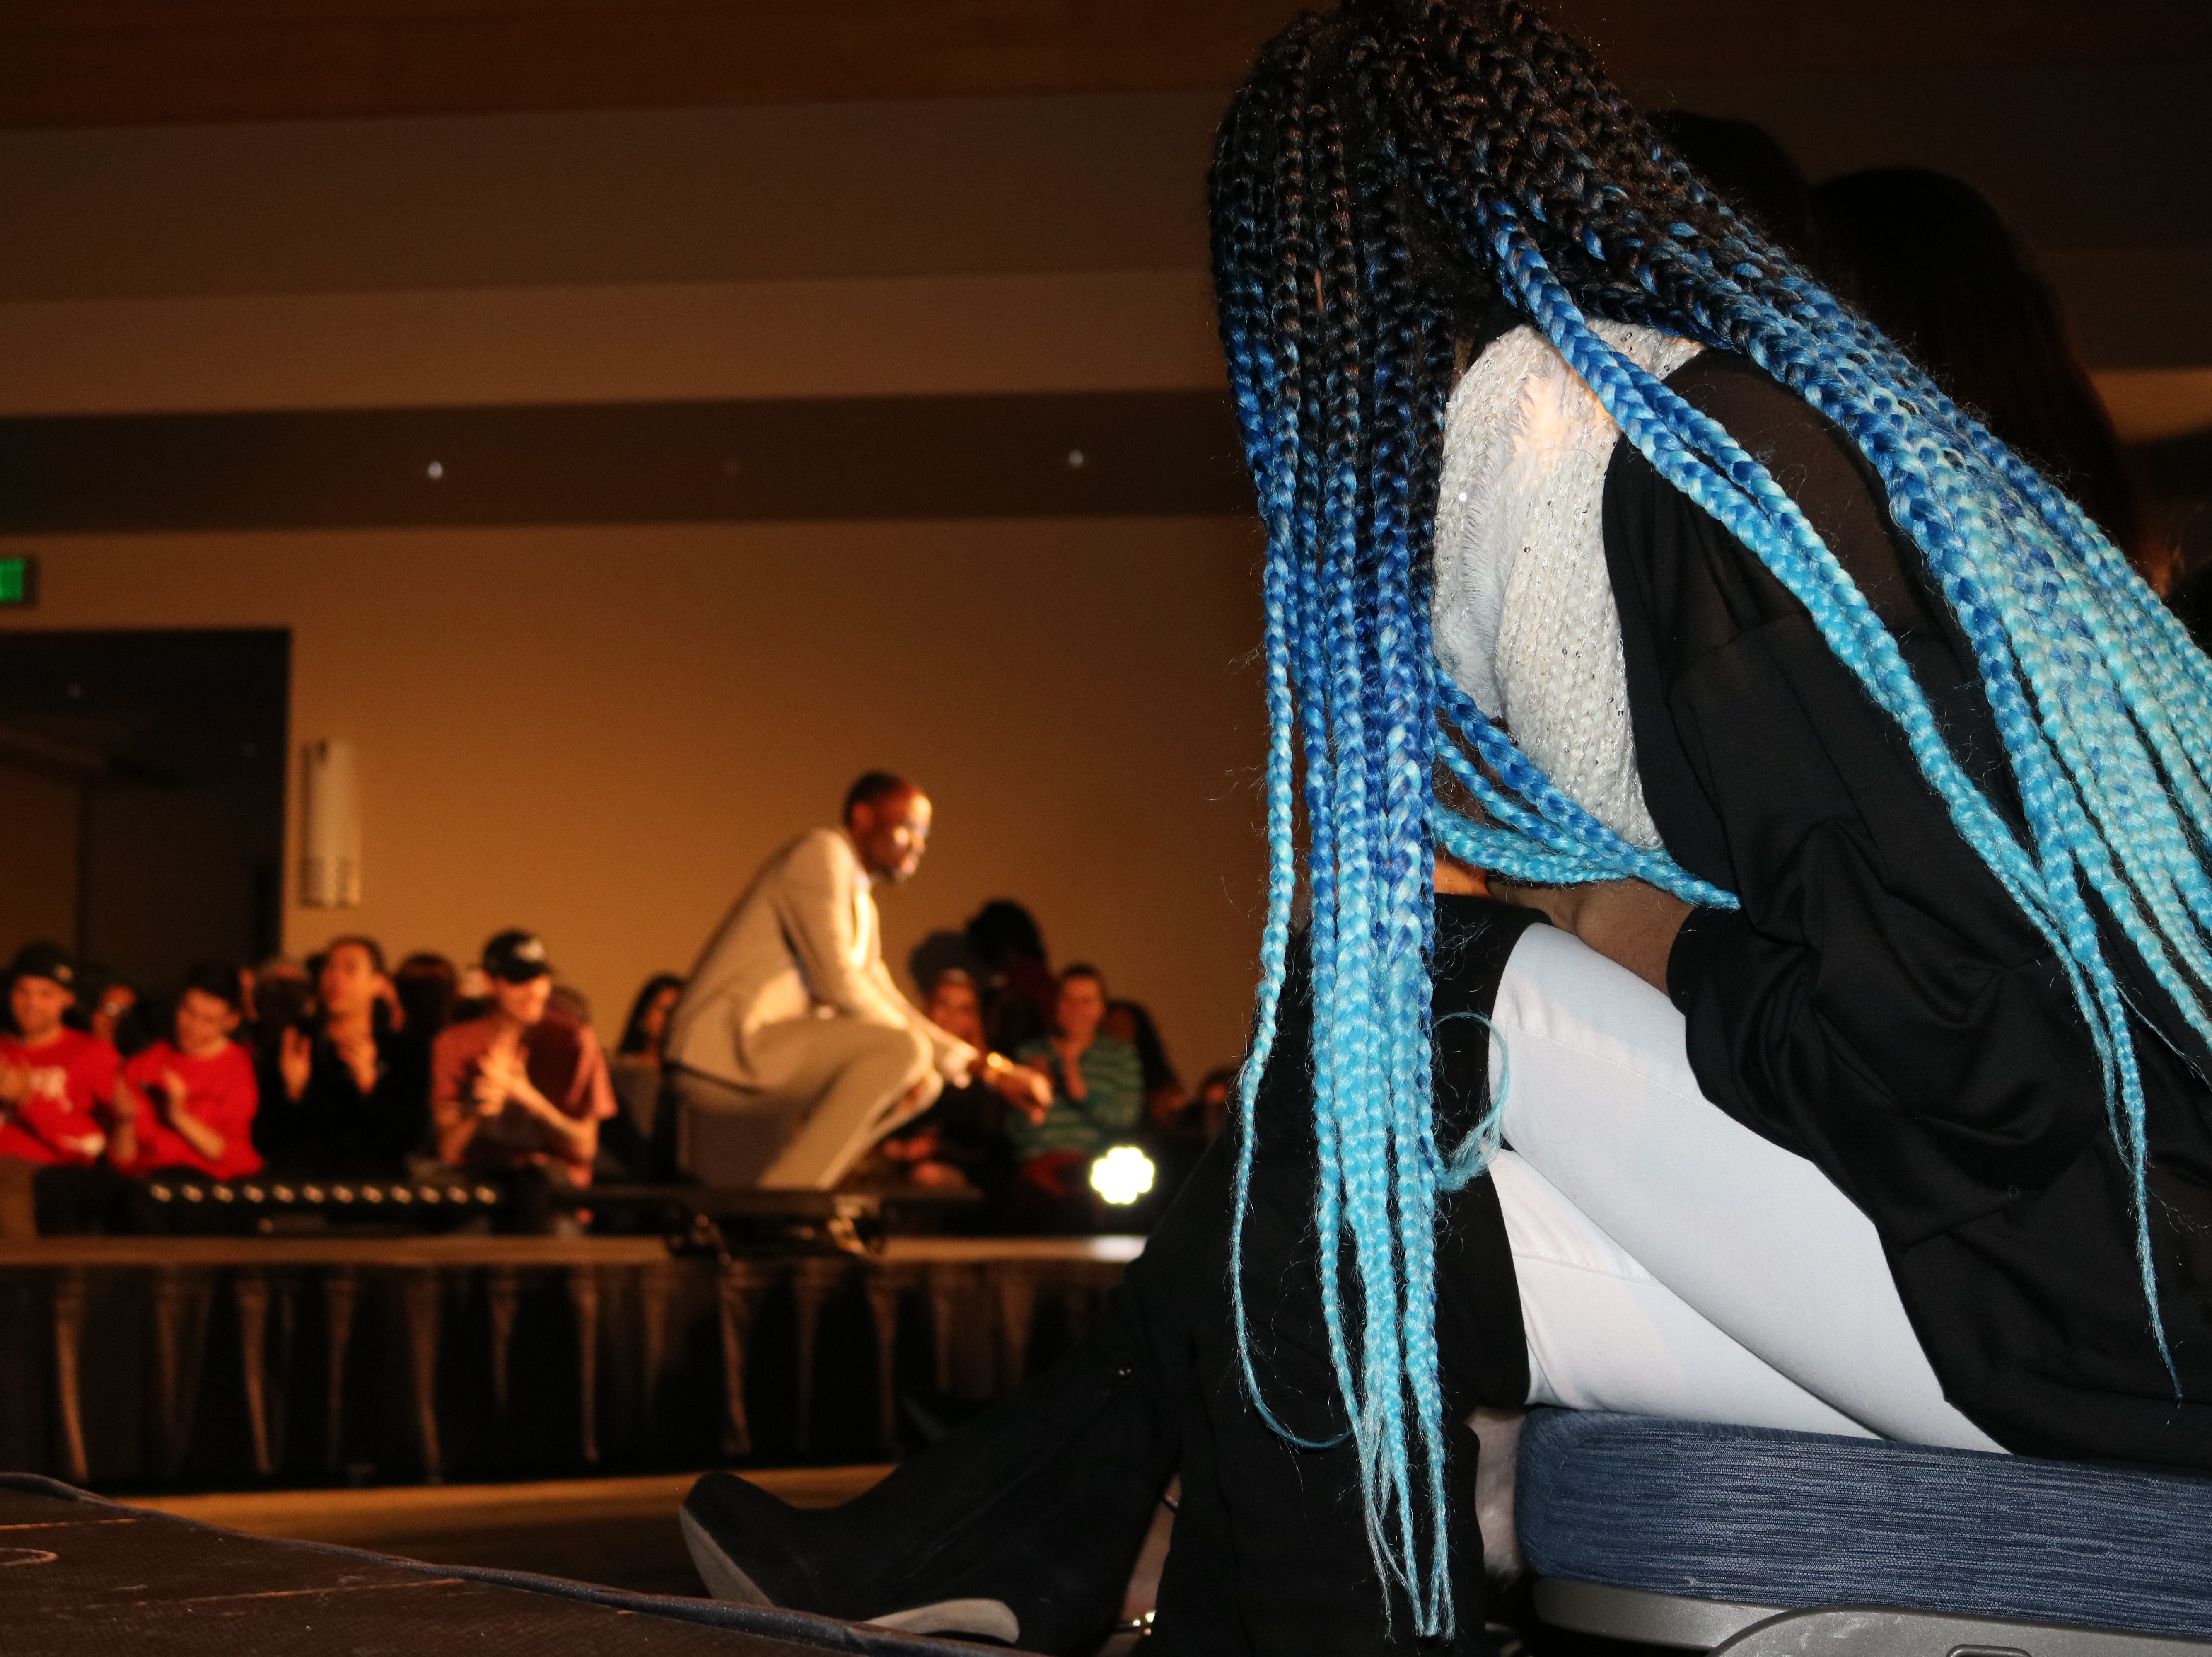 """There were lewks on and off the catwalk on Saturday, Feb. 23, 2019, at UVM's 2019 fashion show, """"Paint it Black."""" An audience member with blue ombre braids leans forward reacting to the charm of host Young Prince, seen in the background interacting with the crowd."""